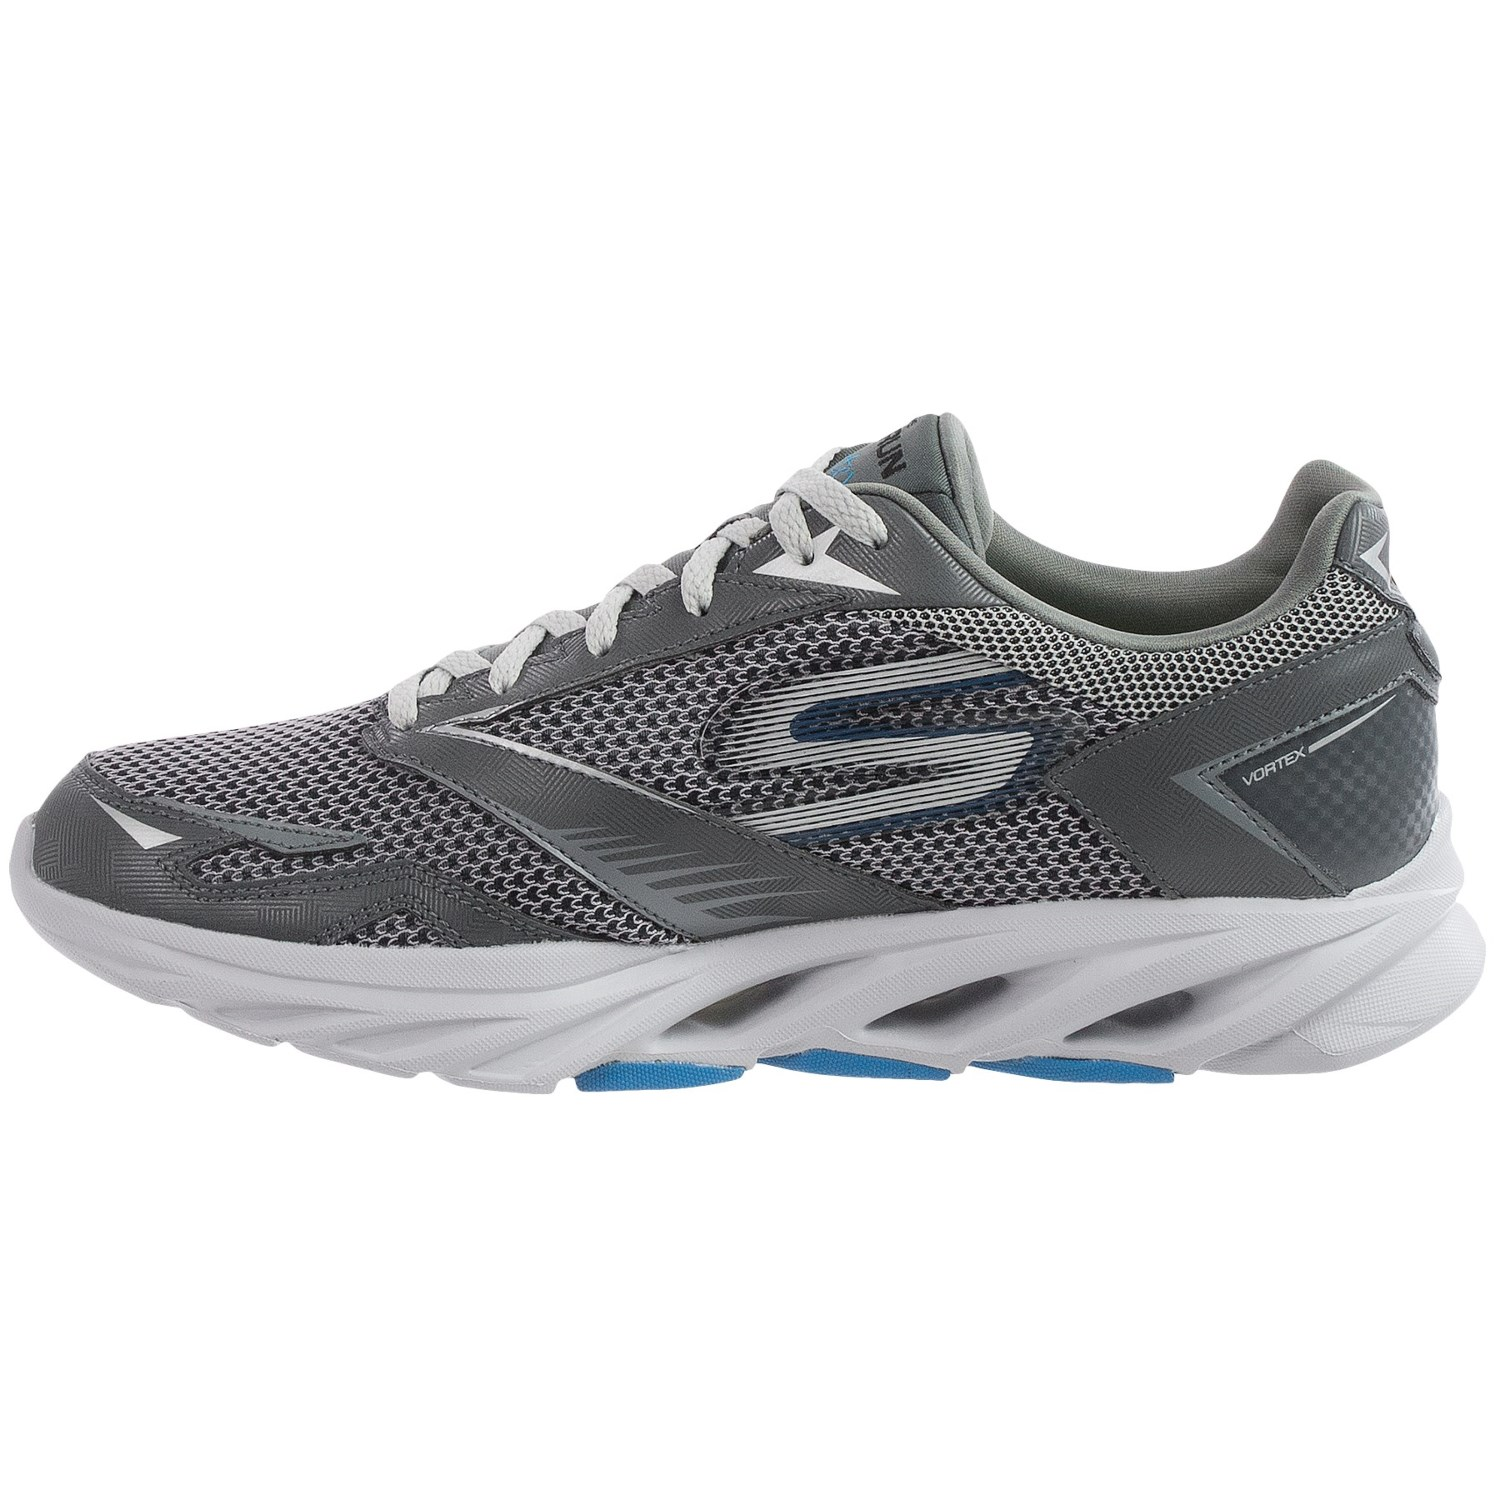 Where To Get Skechers Running Shoes